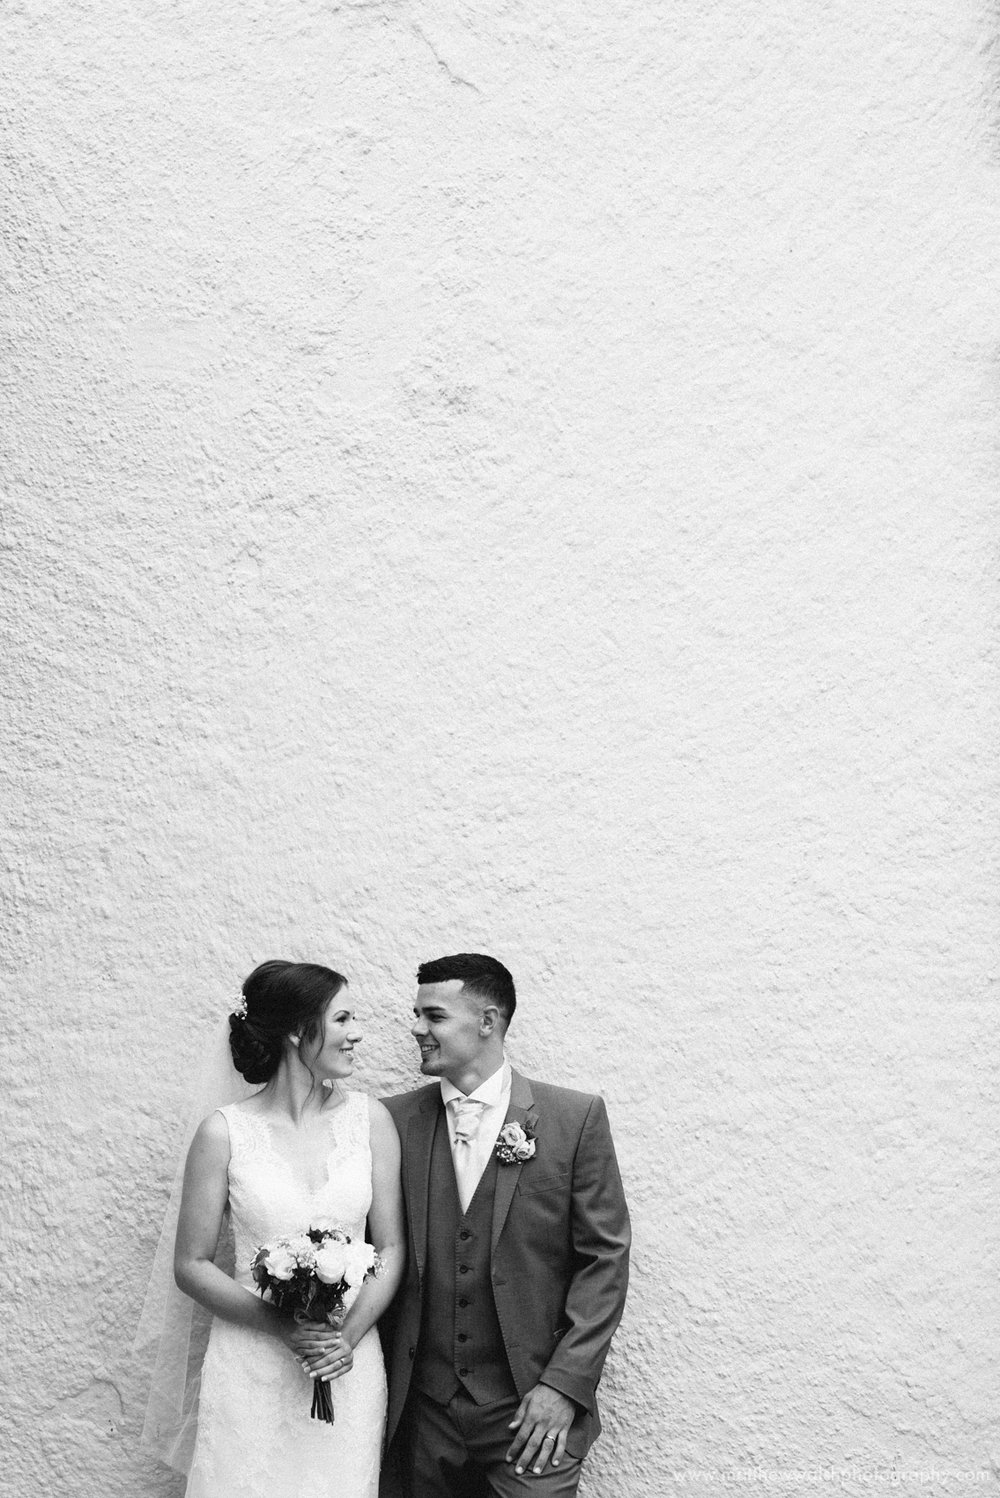 Negative space above the bride and groom